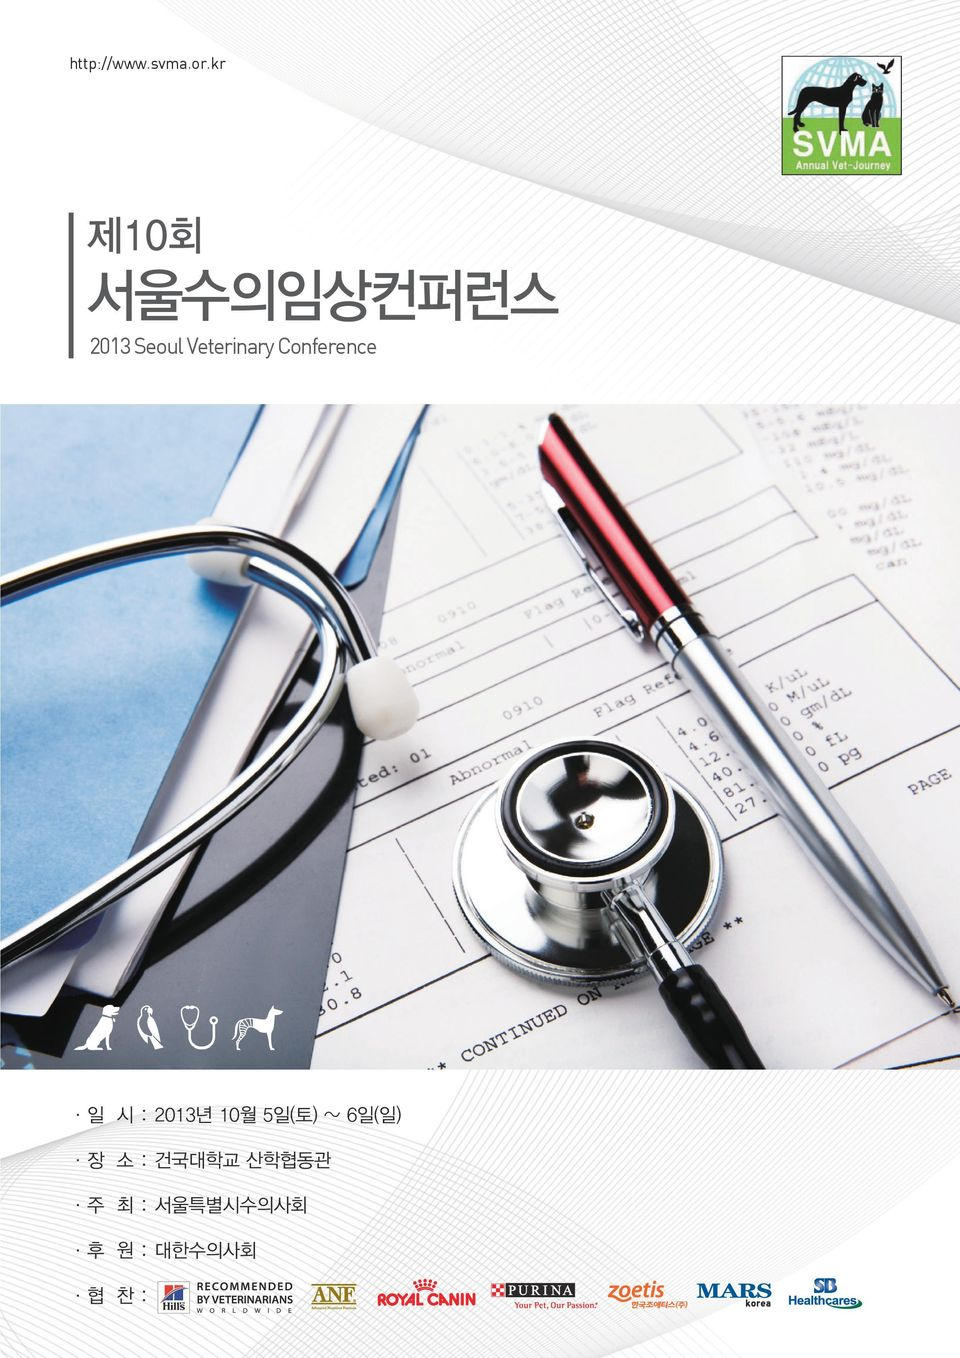 Veterinary Conference 일 시 : 2013년 10월